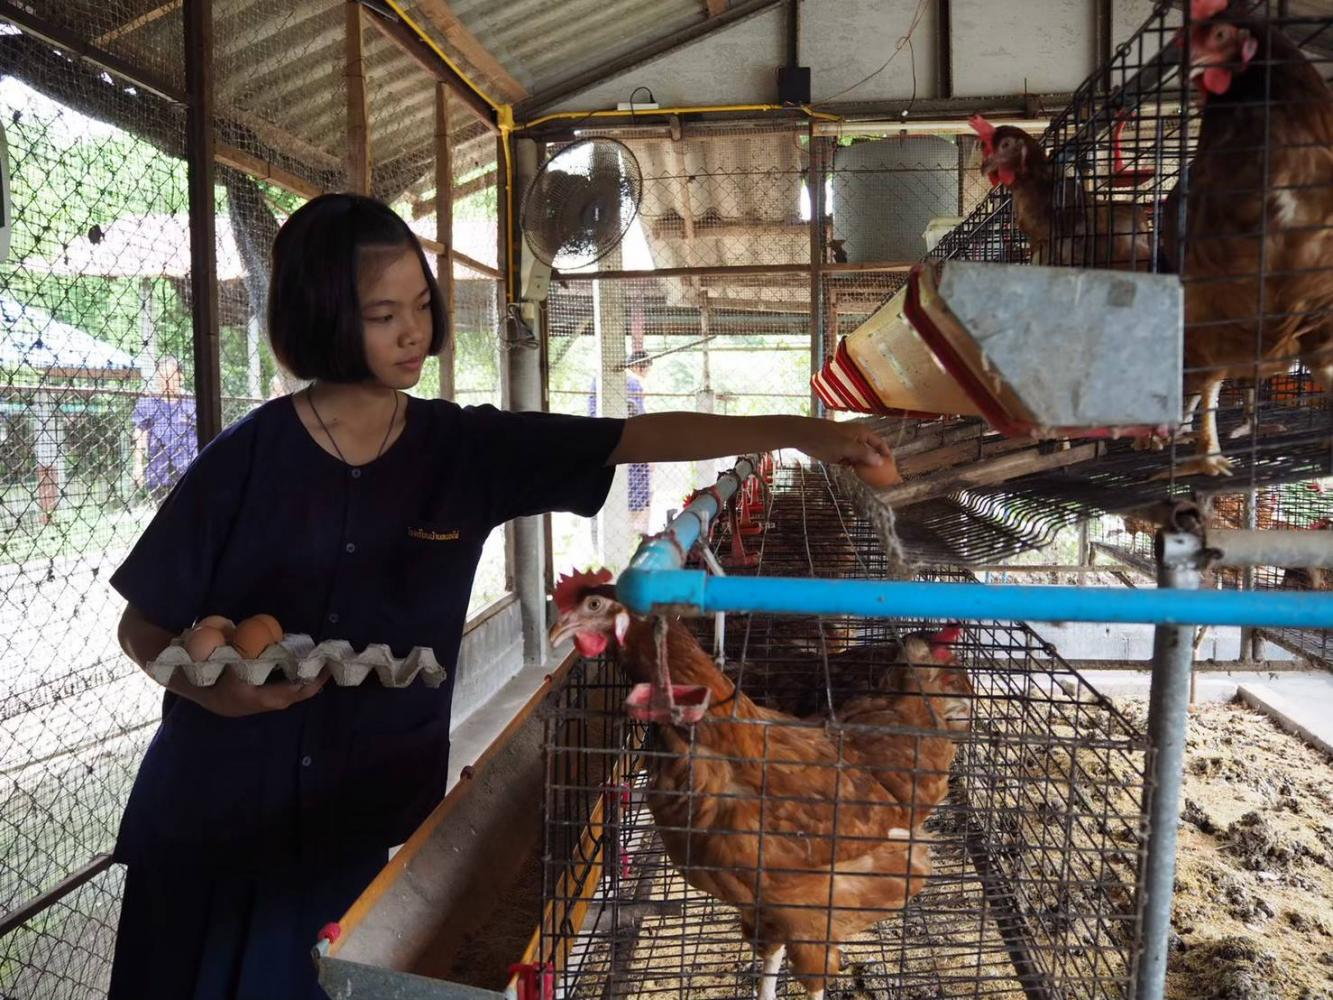 Honest business: Knasnan Apiwanasbordee, 14, a student at Ban Nong Phai school and a member of the school's farm club says she can make 2,500 baht a year selling organic eggs. The school in Nakhon Sawan province is famous for farm projects which follow His Majesty King Bhumibol Adulyadej The Great's Sufficiency Economy Philosophy.